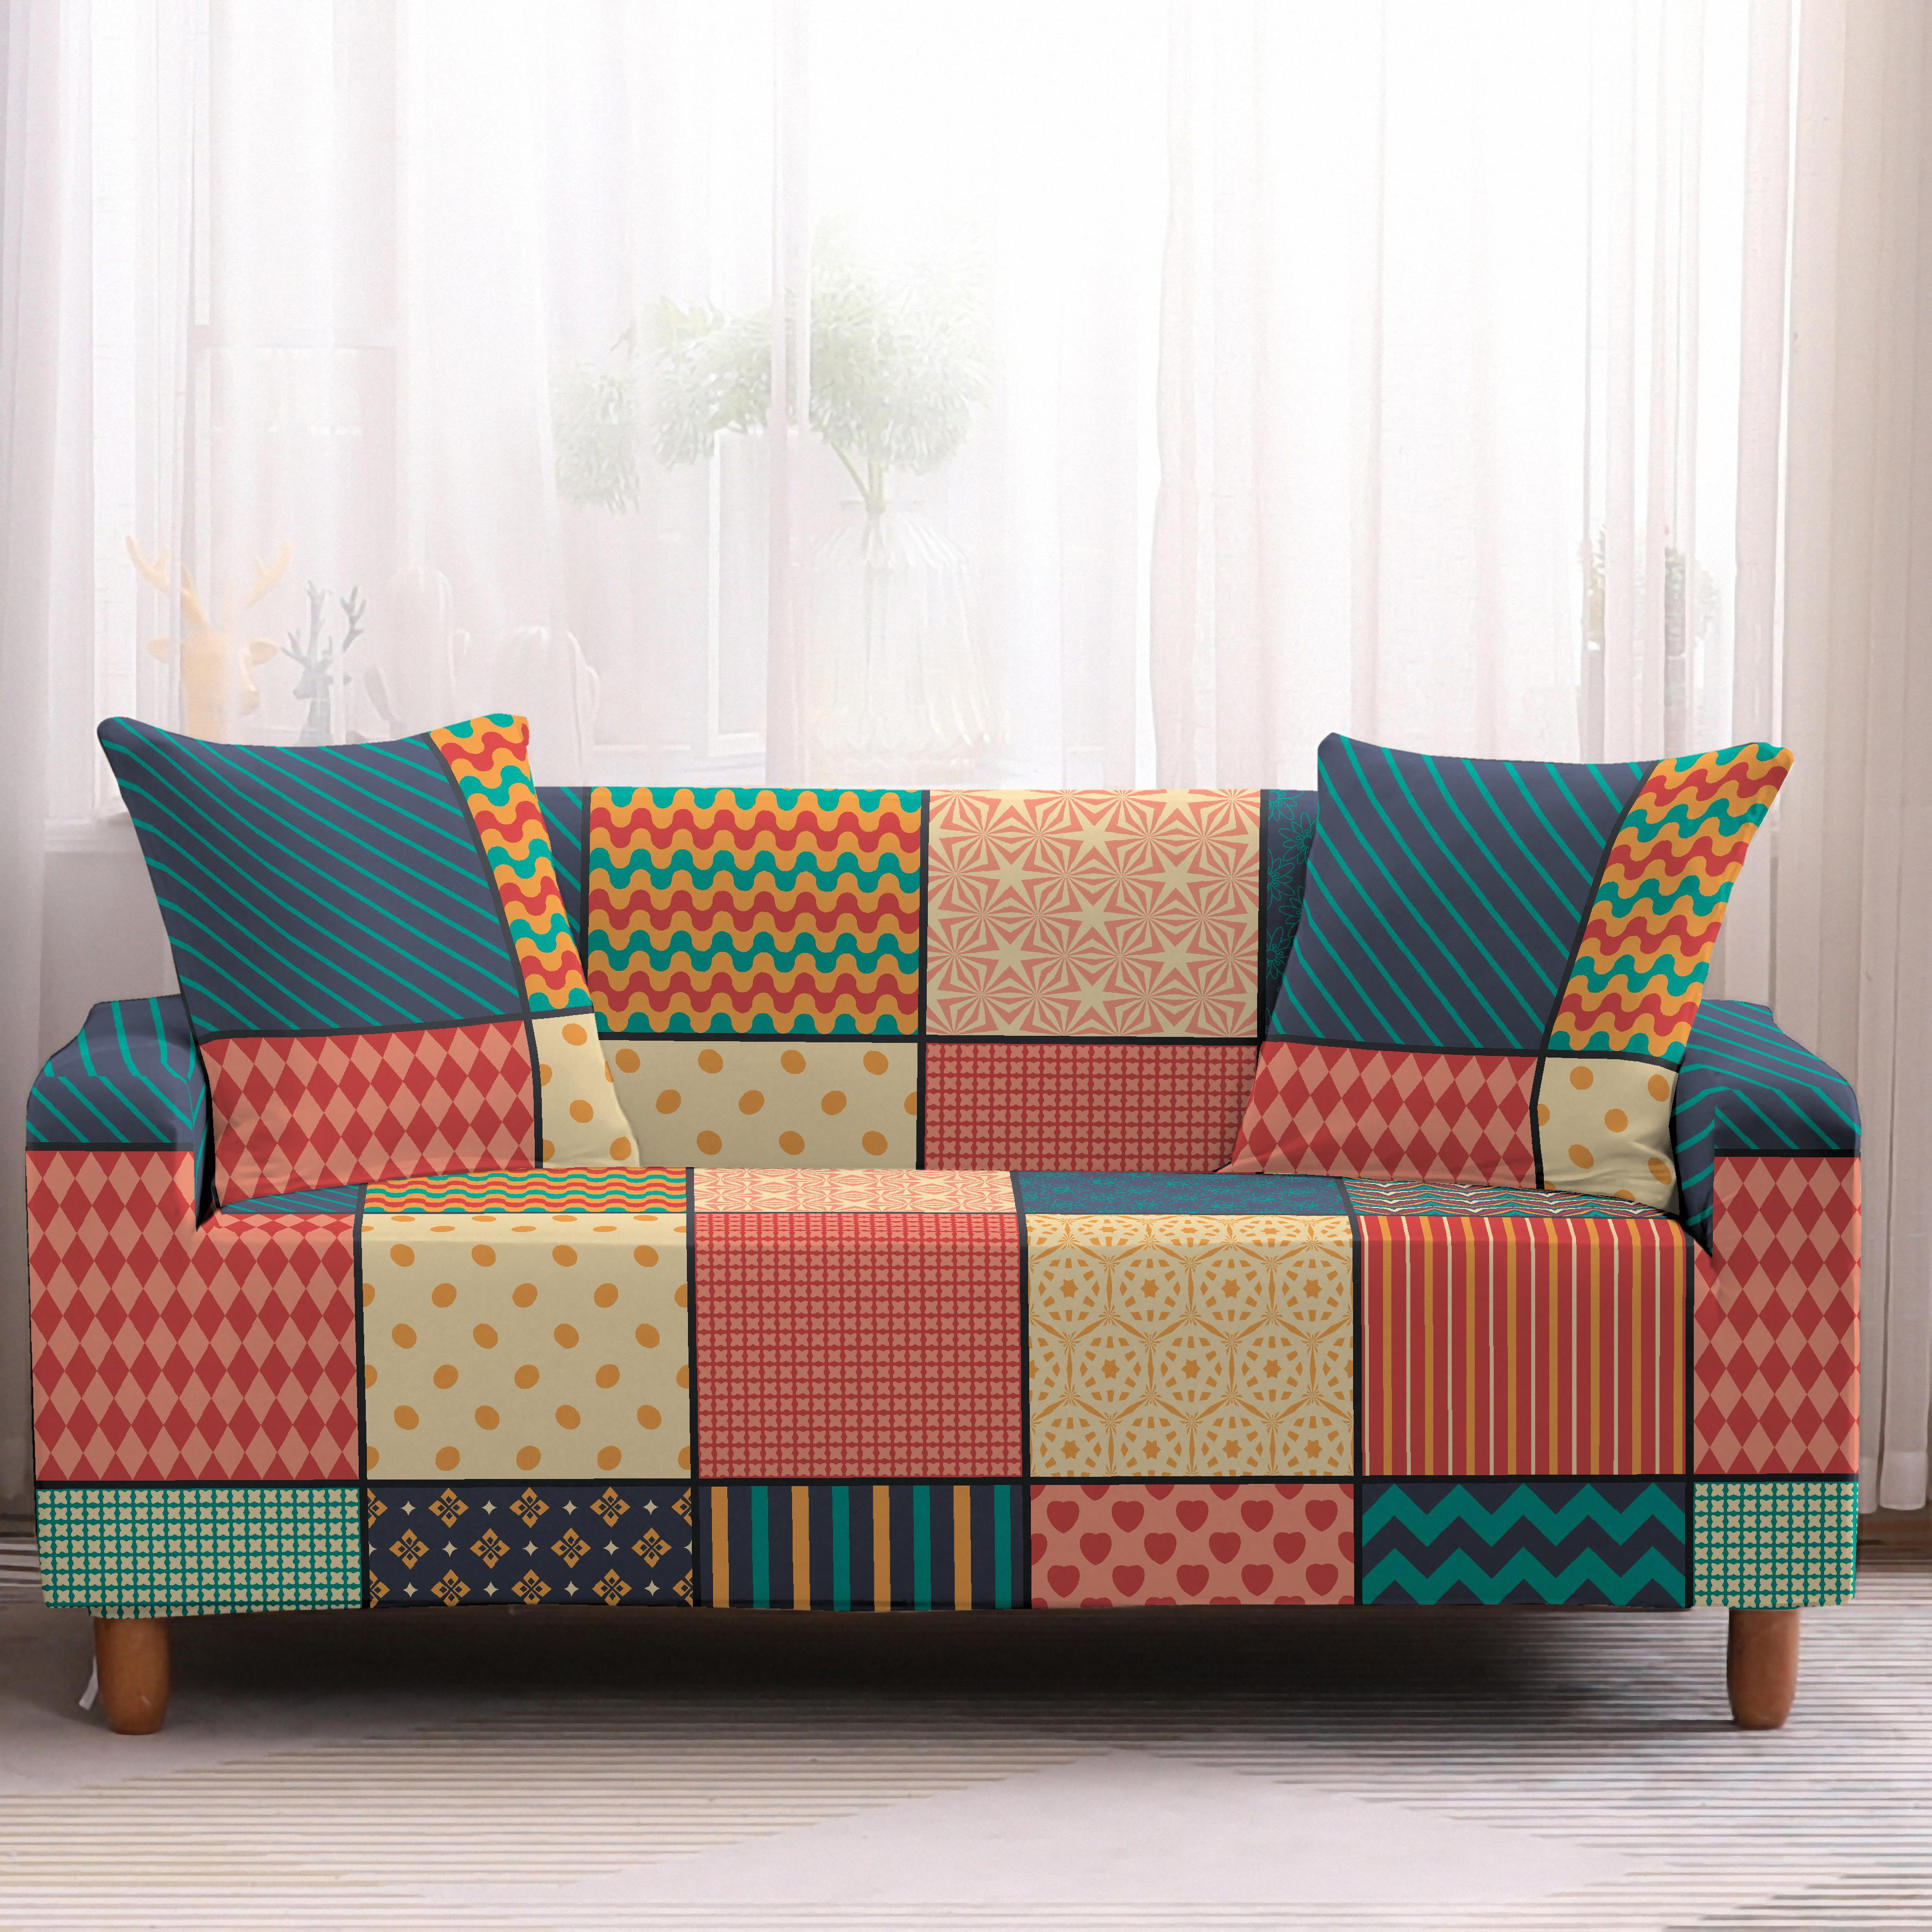 Homesky Geometric Sofa Cover Stretch Nordic Slipcovers Sectional Couch Corner Cover Sofa Covers For Living Room Buy At The Price Of 4 83 In Aliexpress Com Imall Com